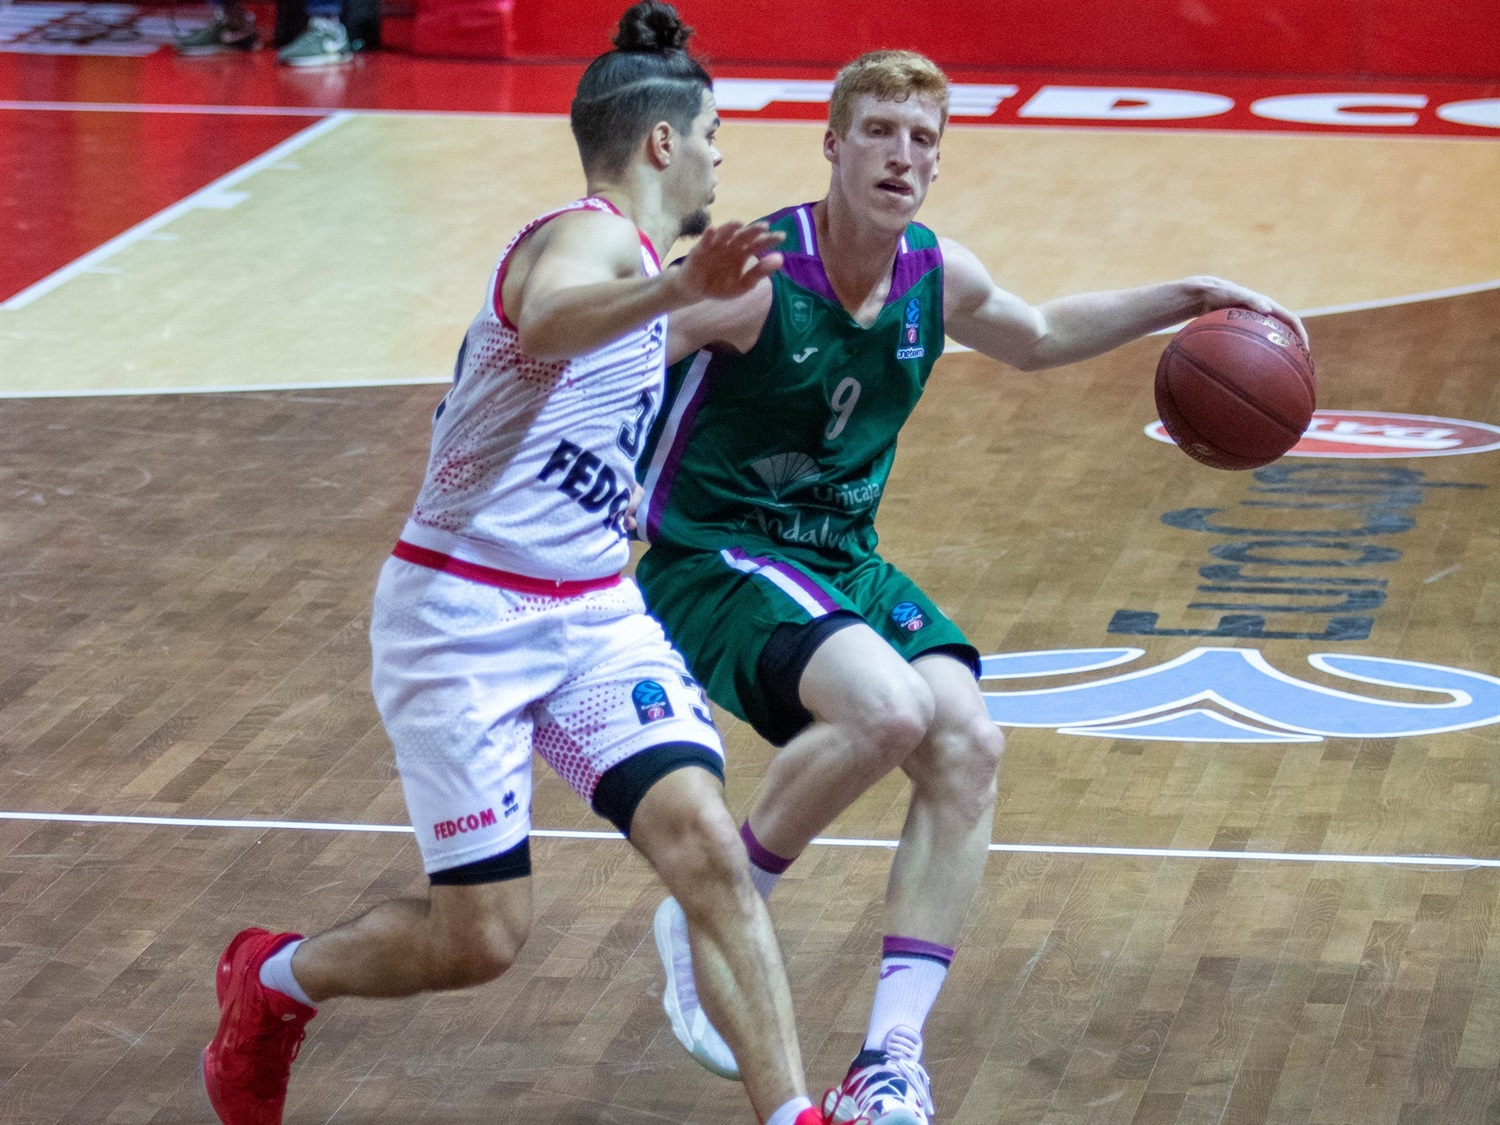 Alberto Diaz - Unicaja Malaga (photo Monaco) - EC20